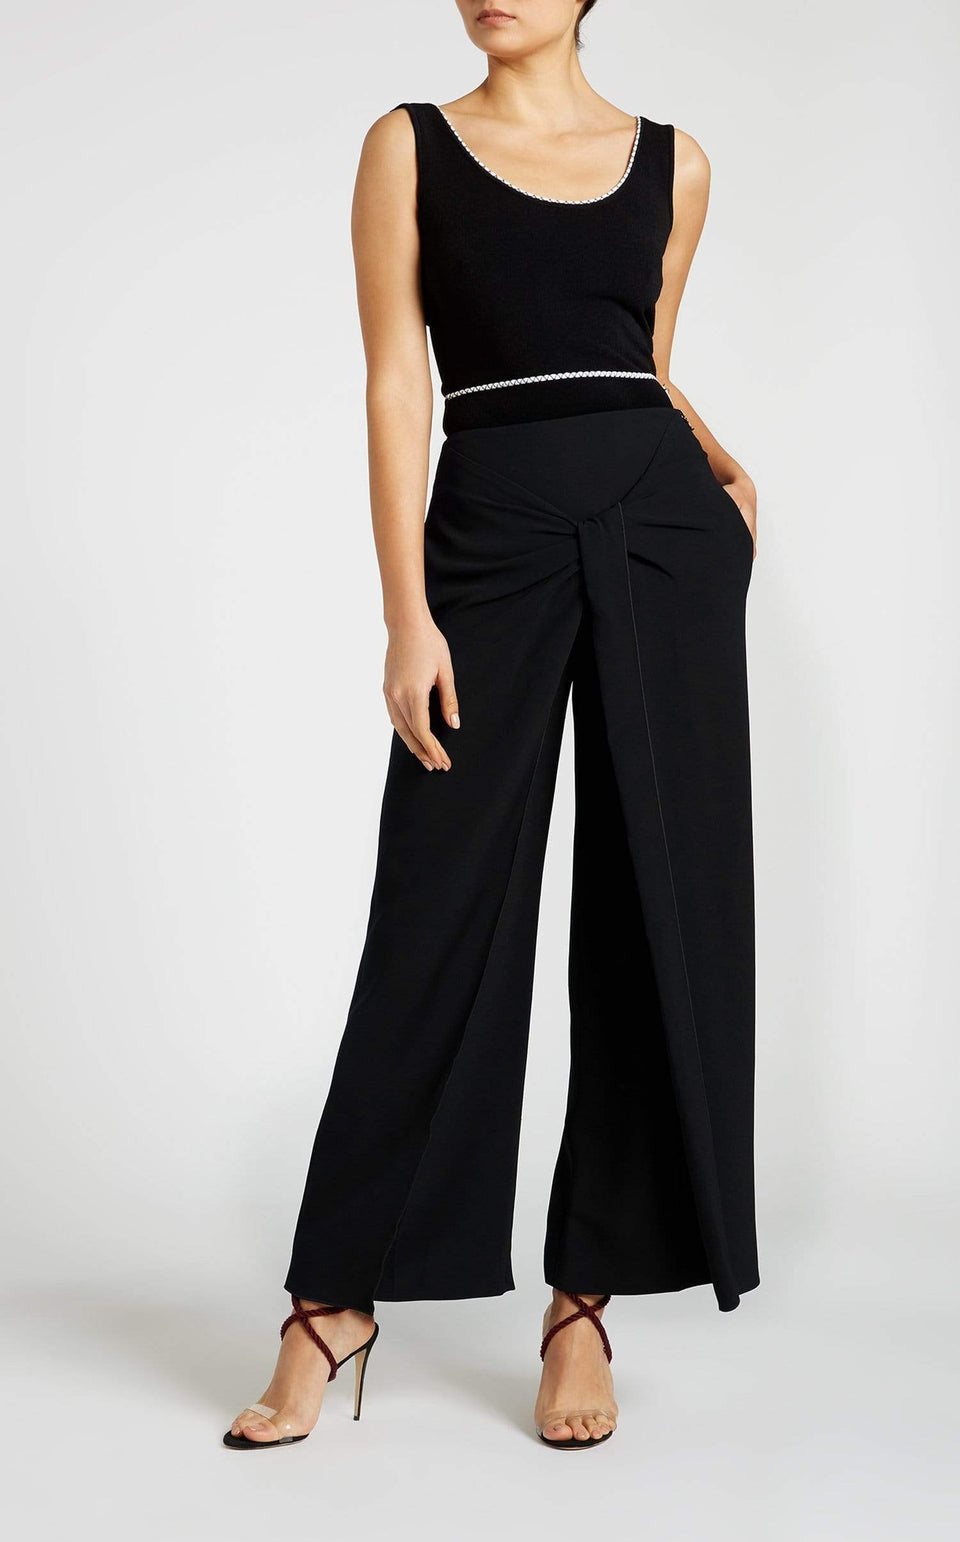 Fenwick Trouser In Black from Roland Mouret